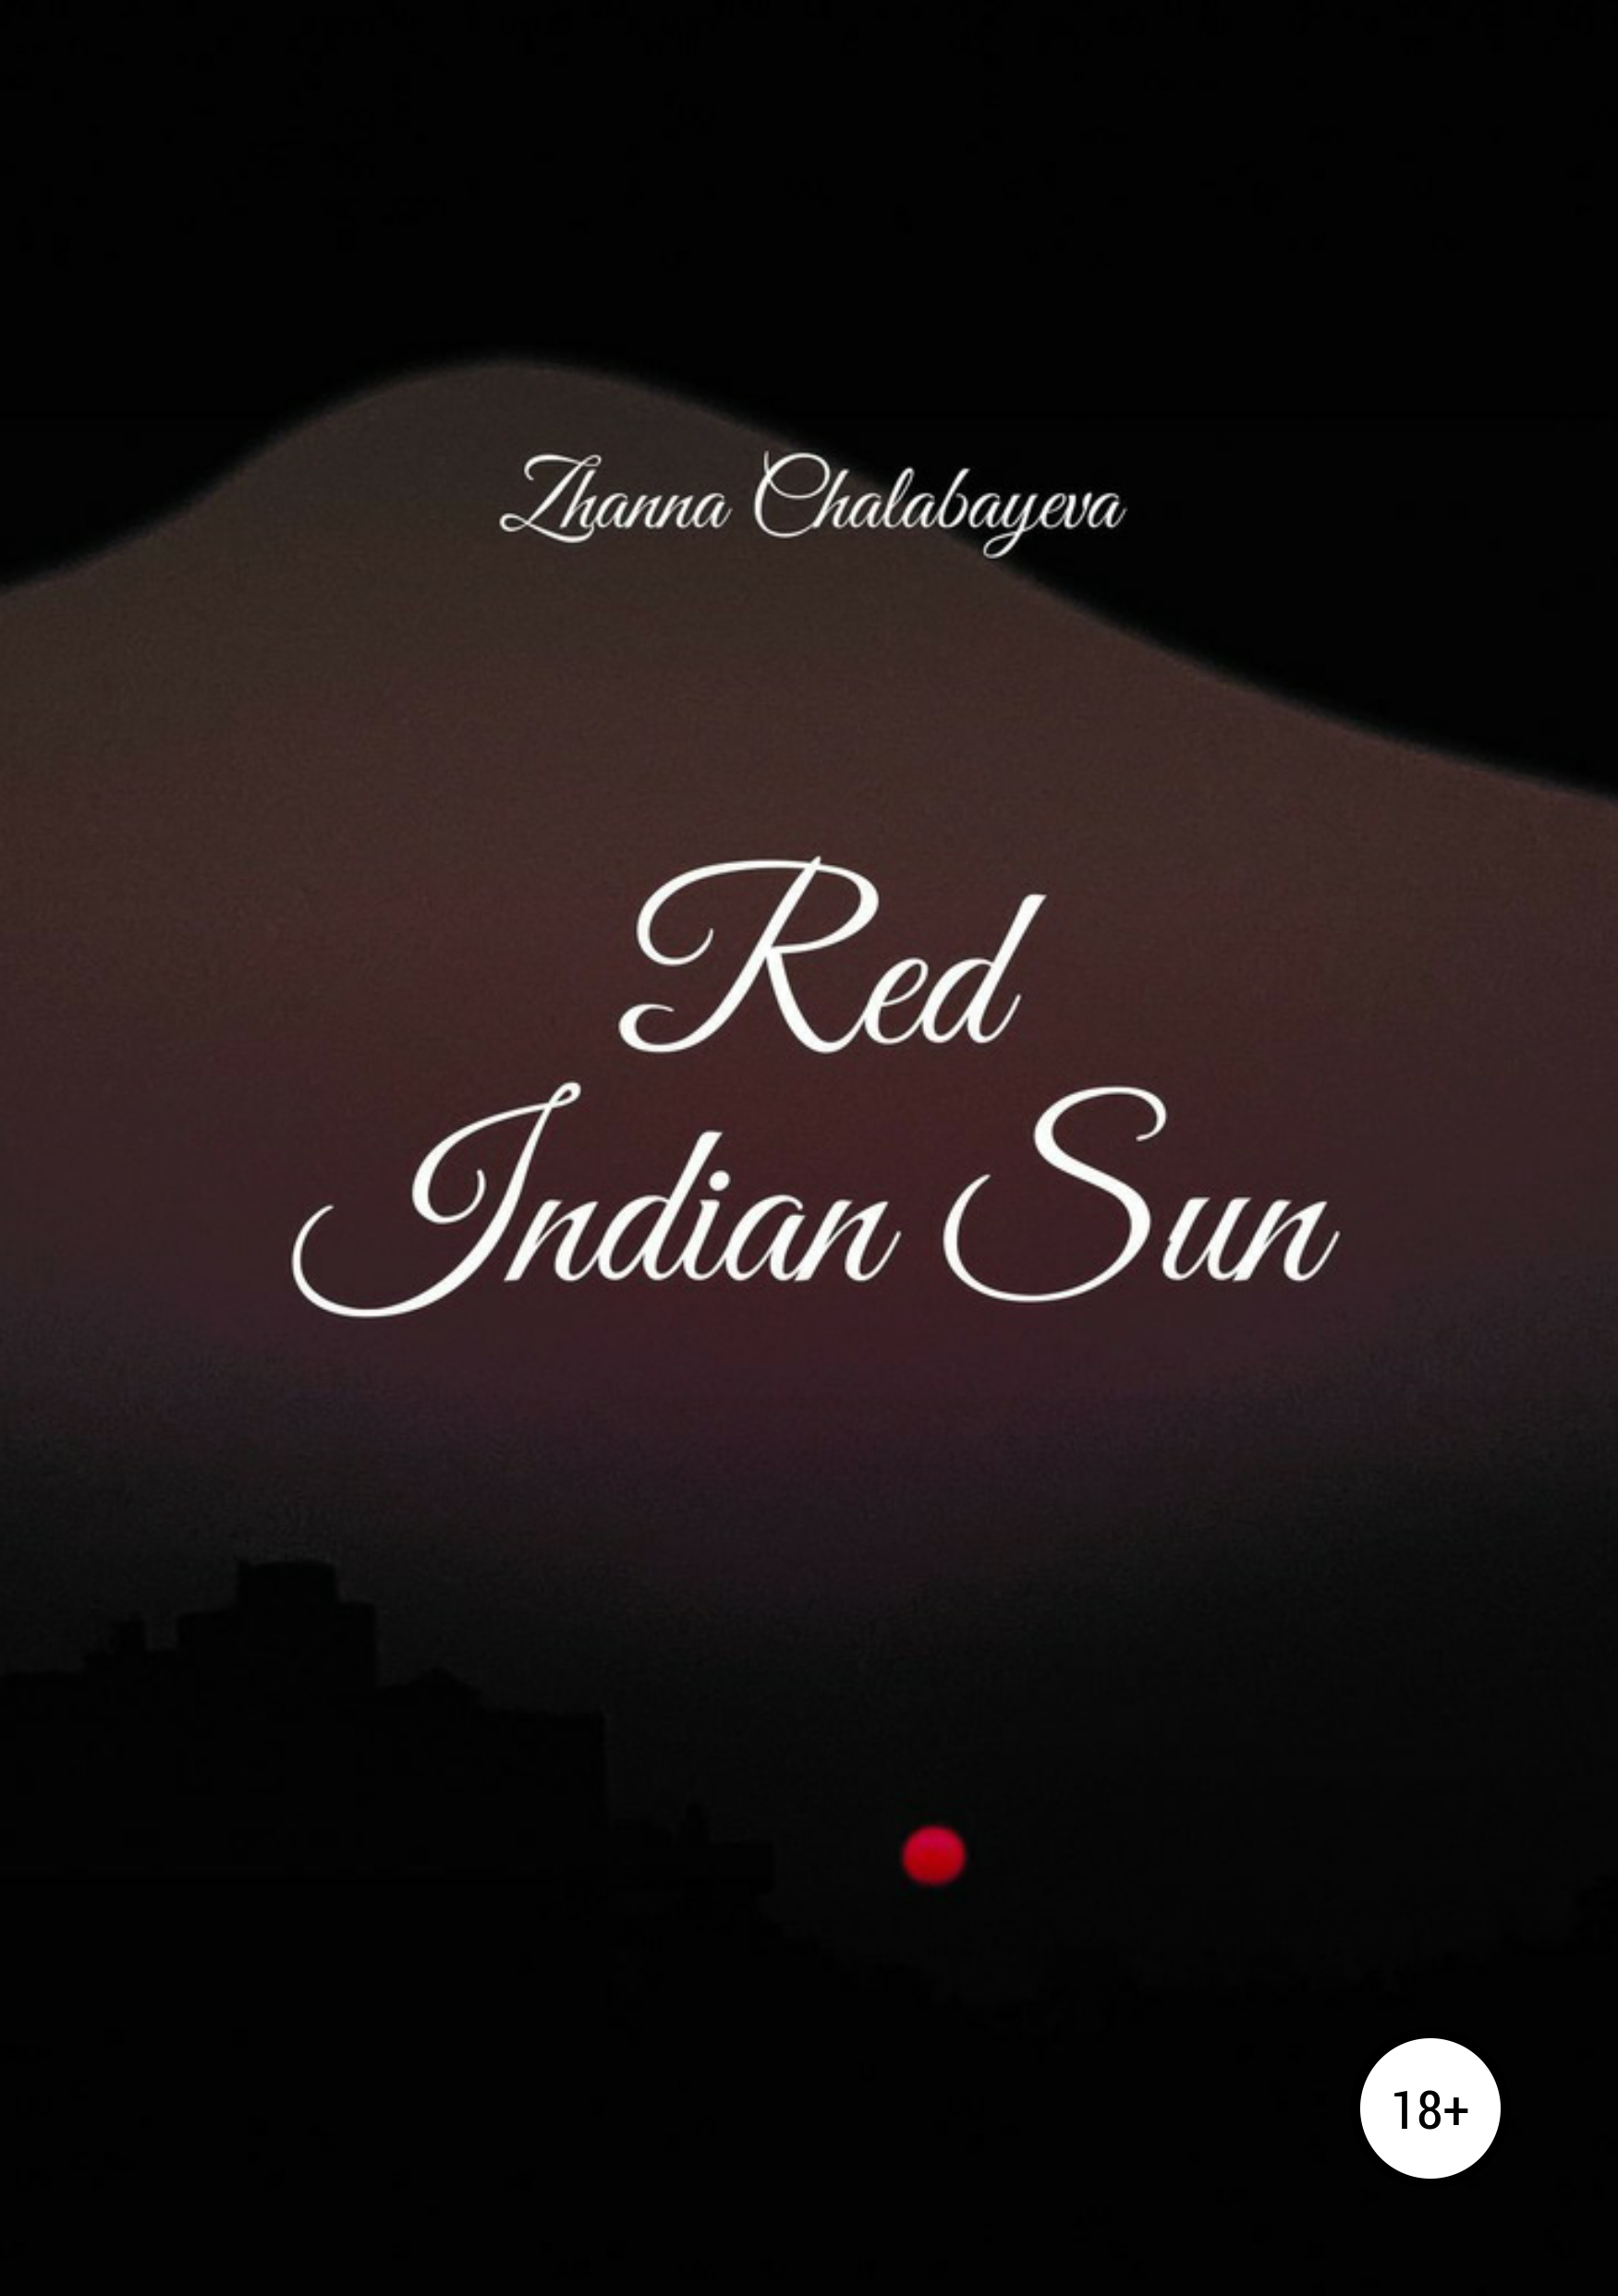 Zhanna Chalabayeva Red Indian Sun the lived experience of overcoming prejudice